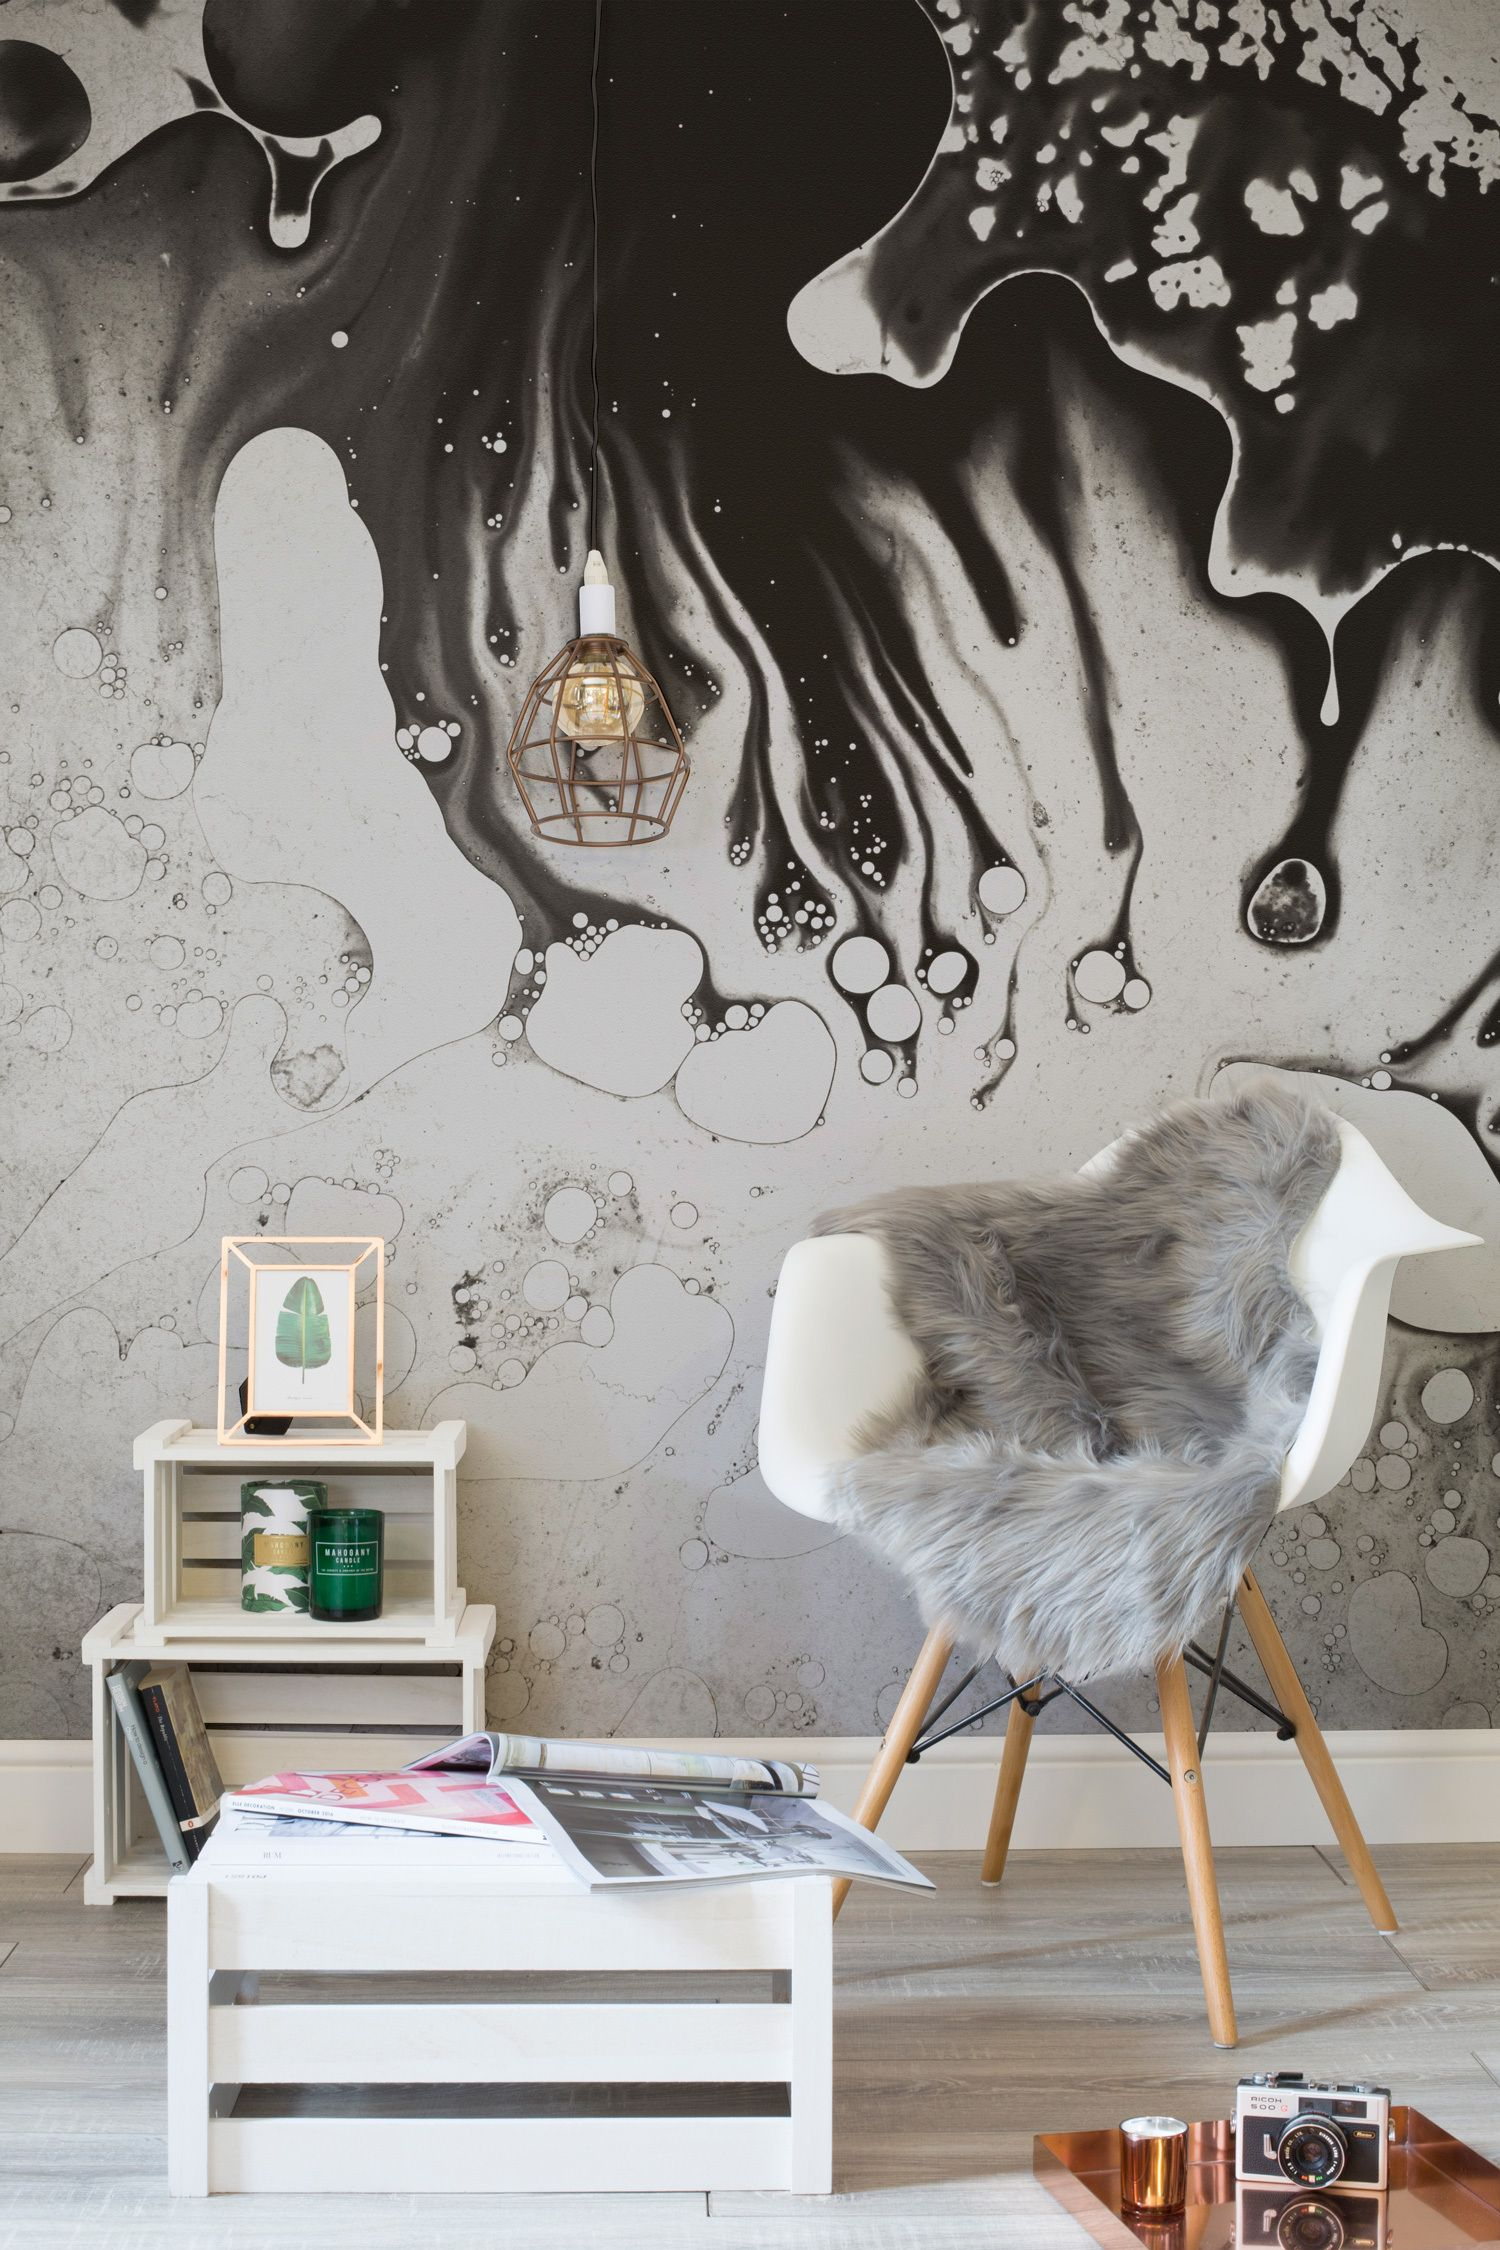 Make a statement with this abstract wallpaper